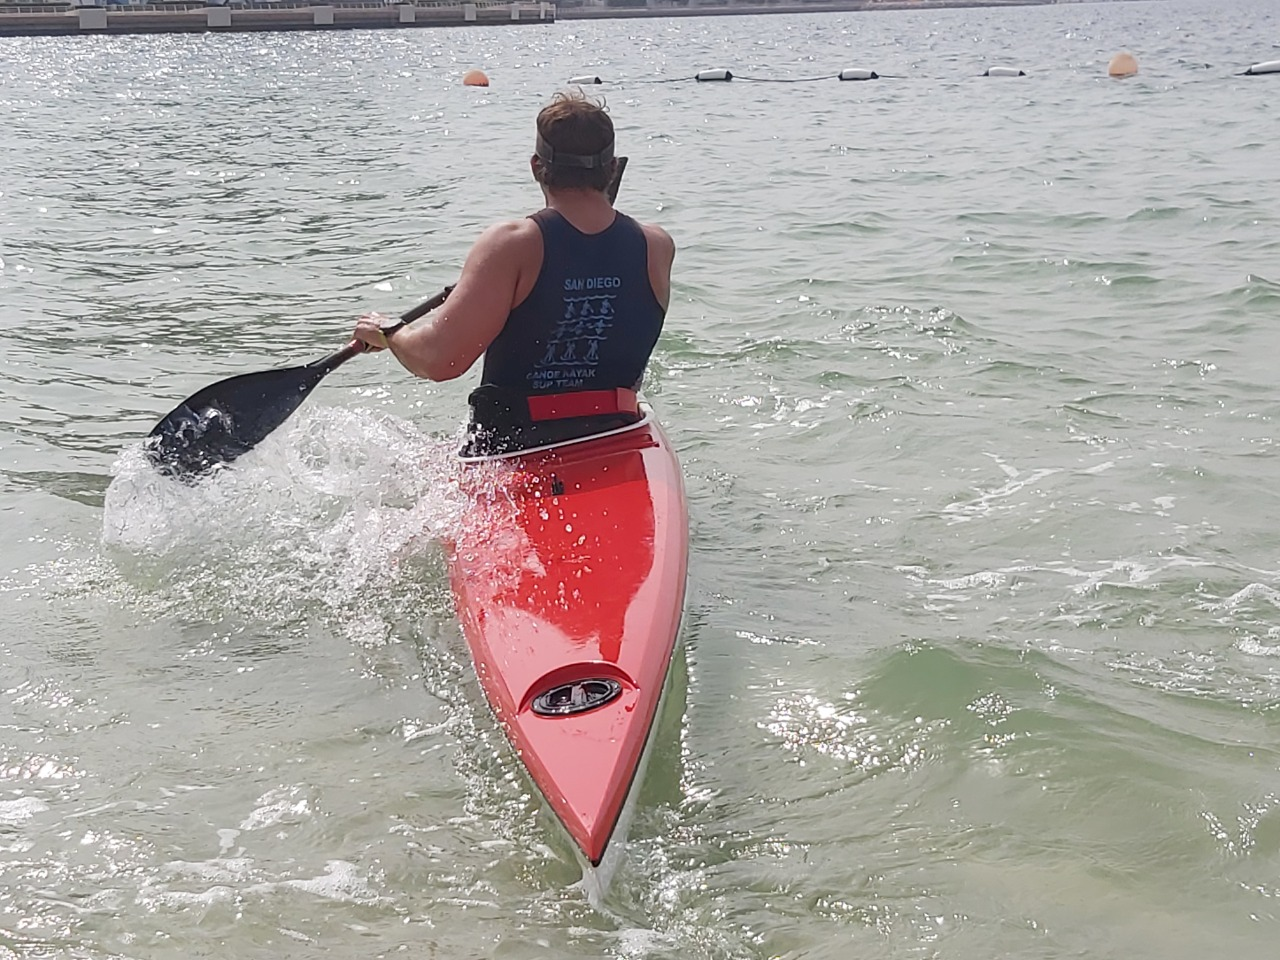 Mike Ballard kayaking